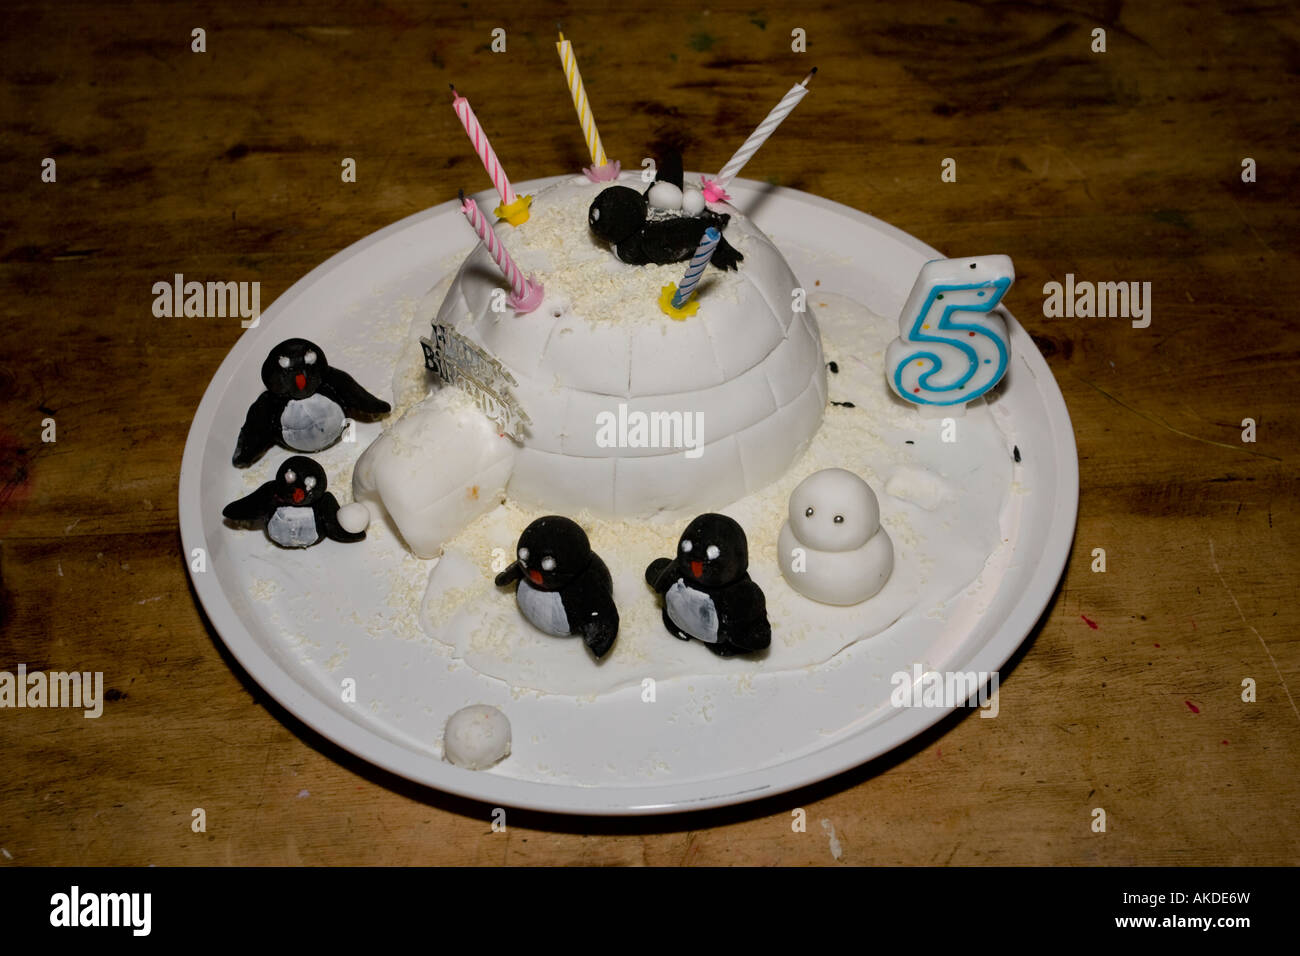 Birthday Cake Penguins Igloo White Icing 5 Five Candles Years UK